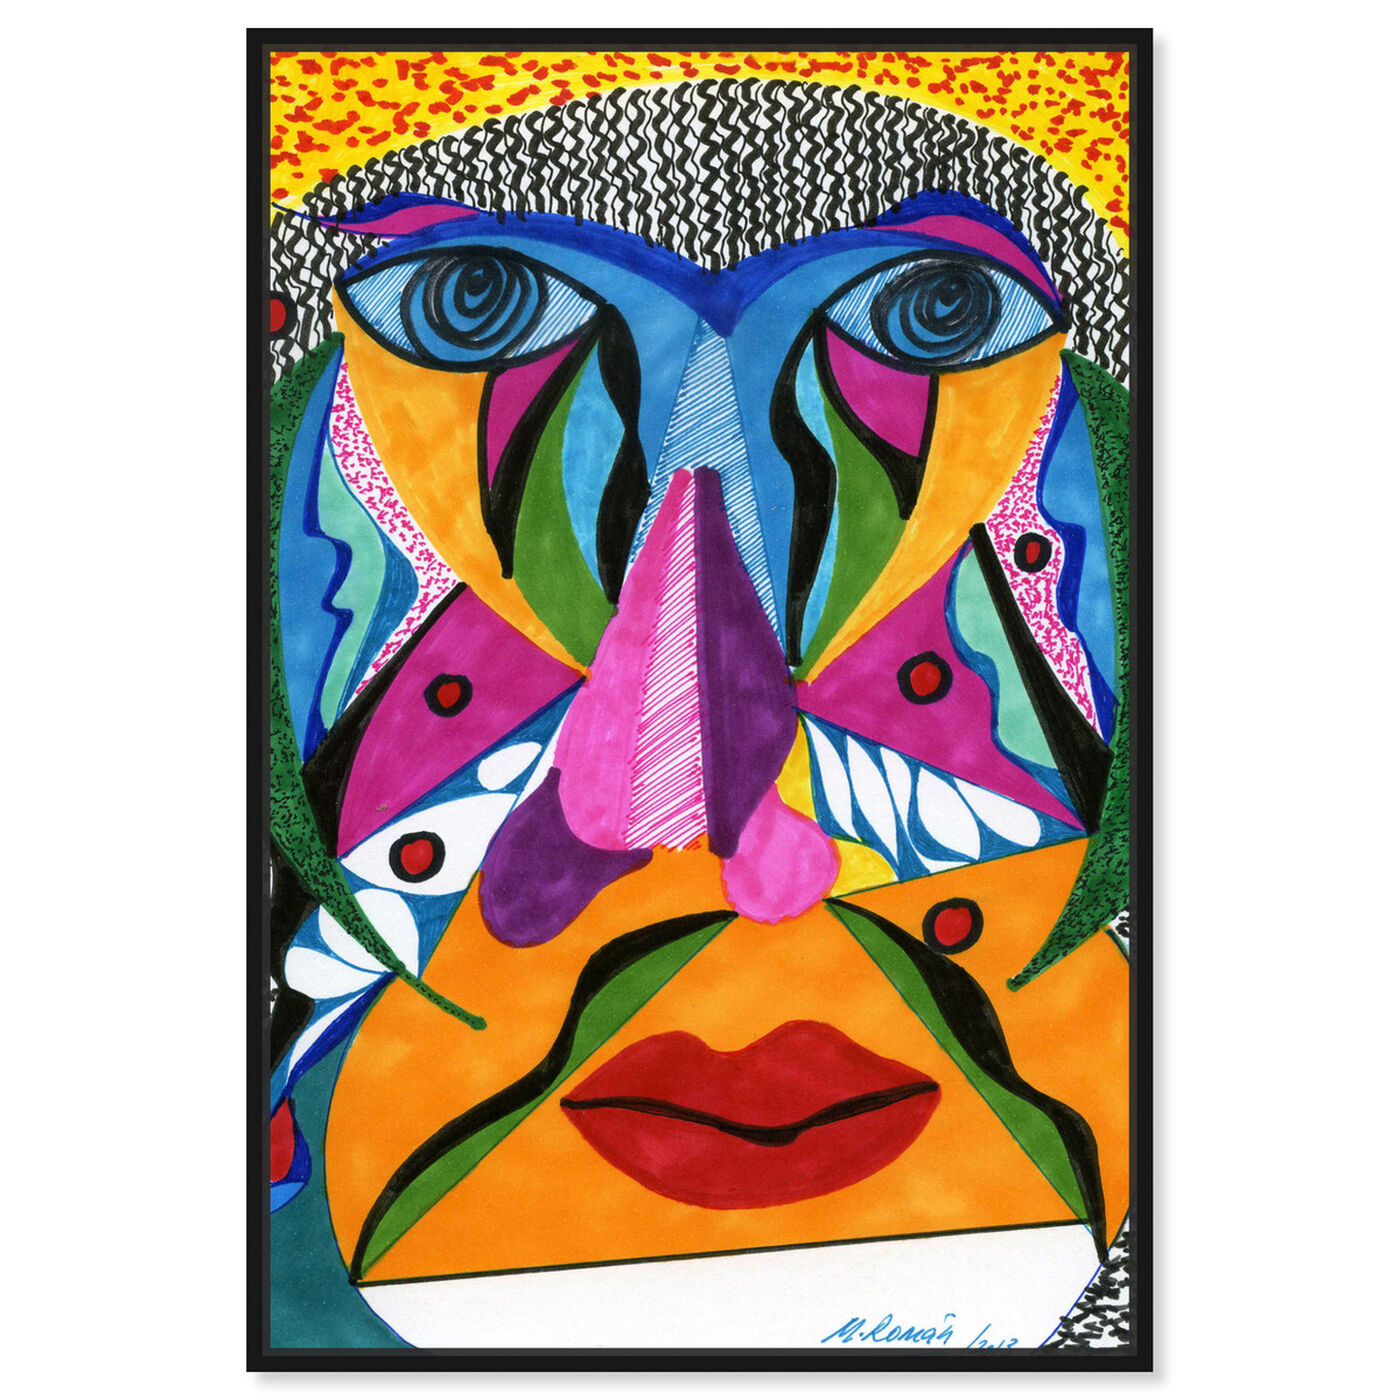 Front view of Her Face featuring abstract and textures art.